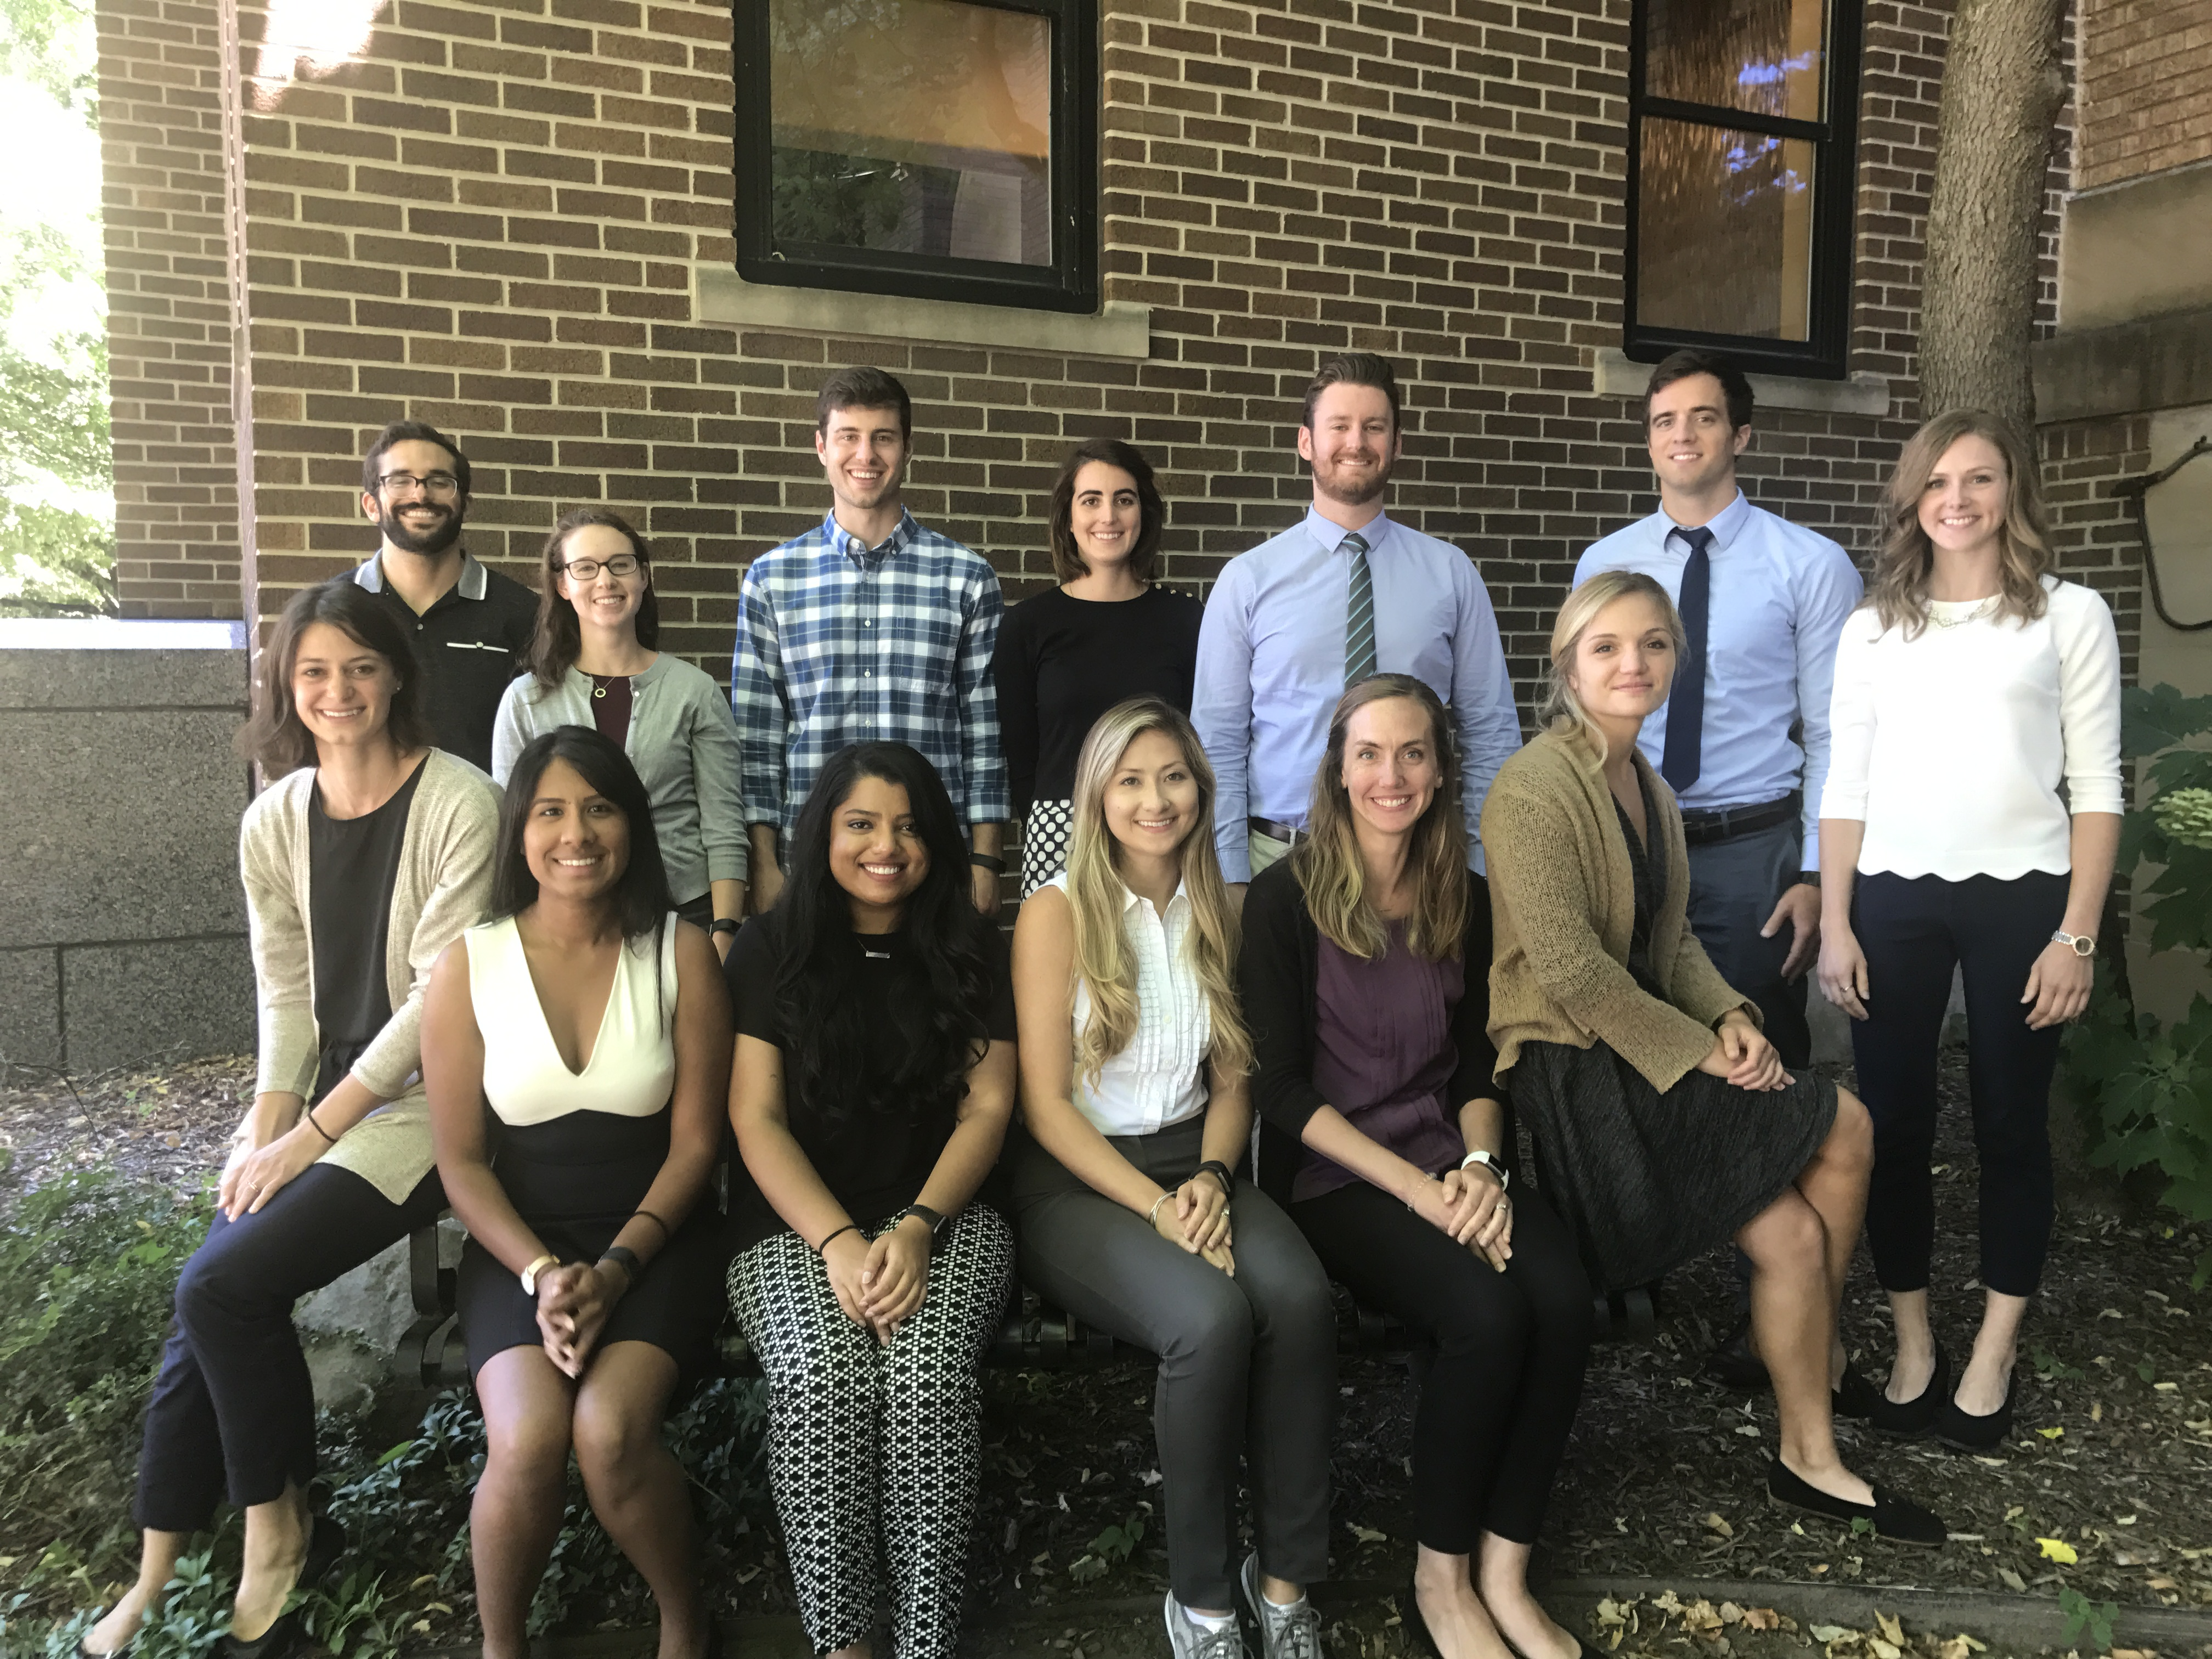 Resident Class of 2012-13 young physicians stand in a group outside.